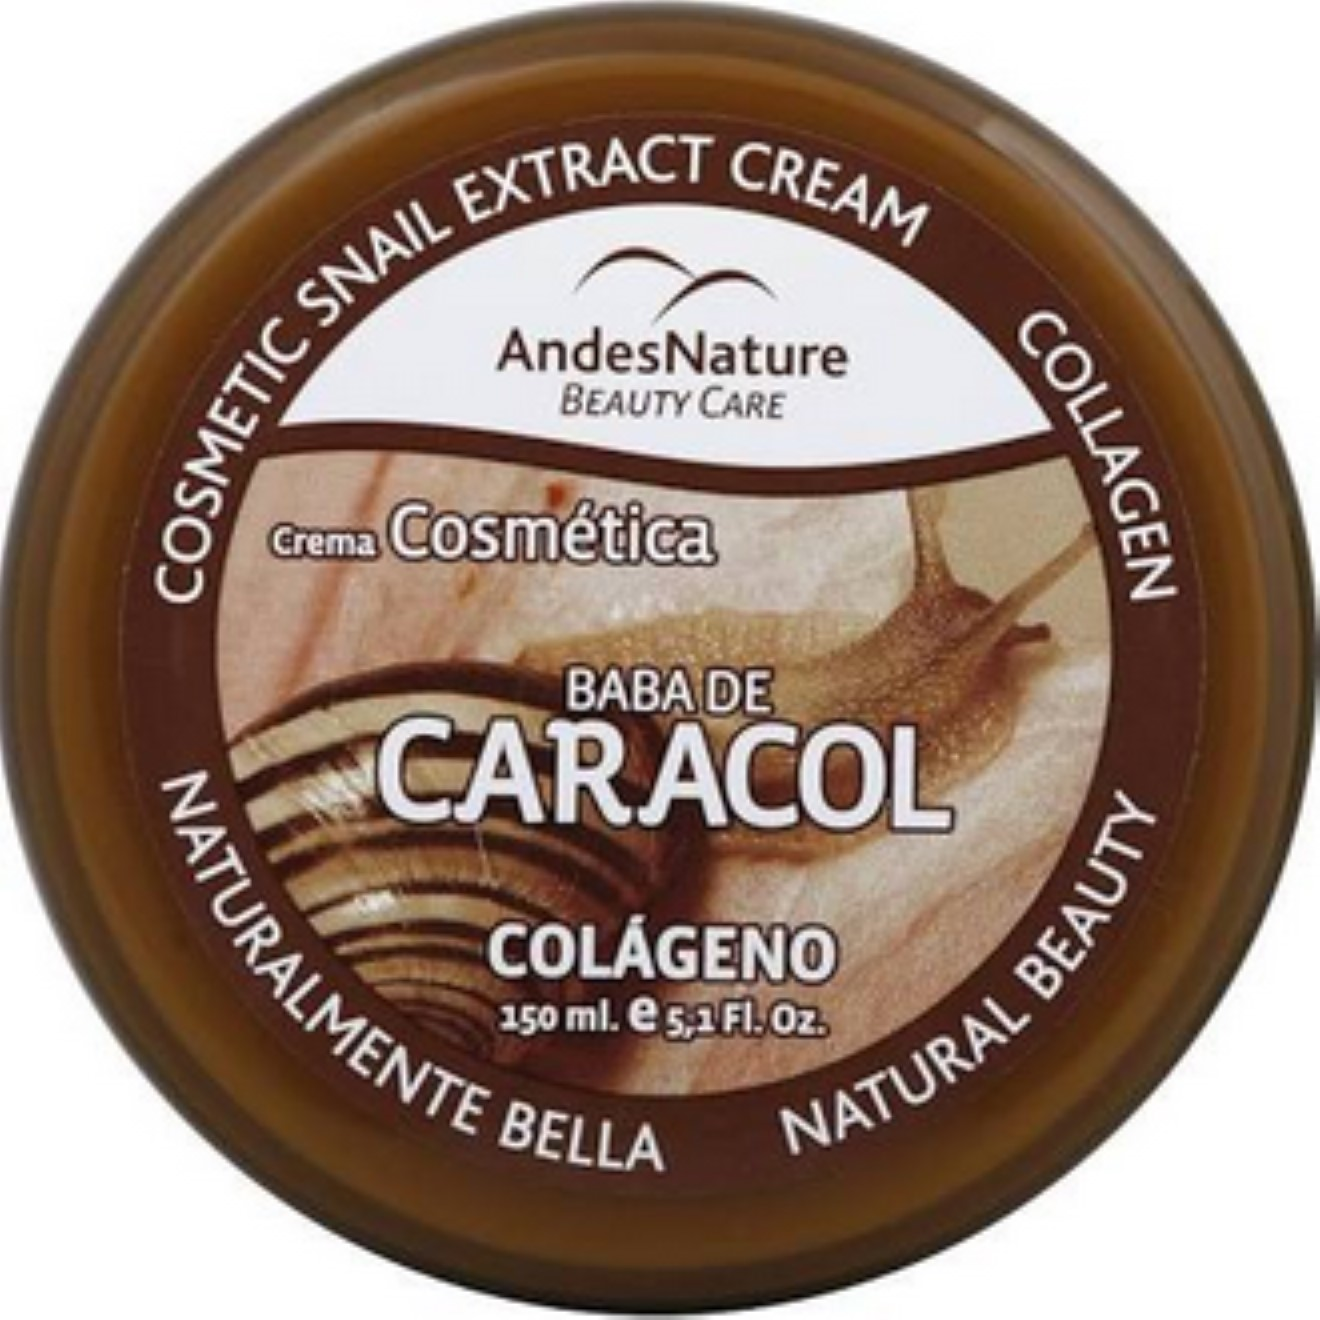 Andes Nature Cosmetic Snail Extract Cream, 5.12 oz (Pack of 2)